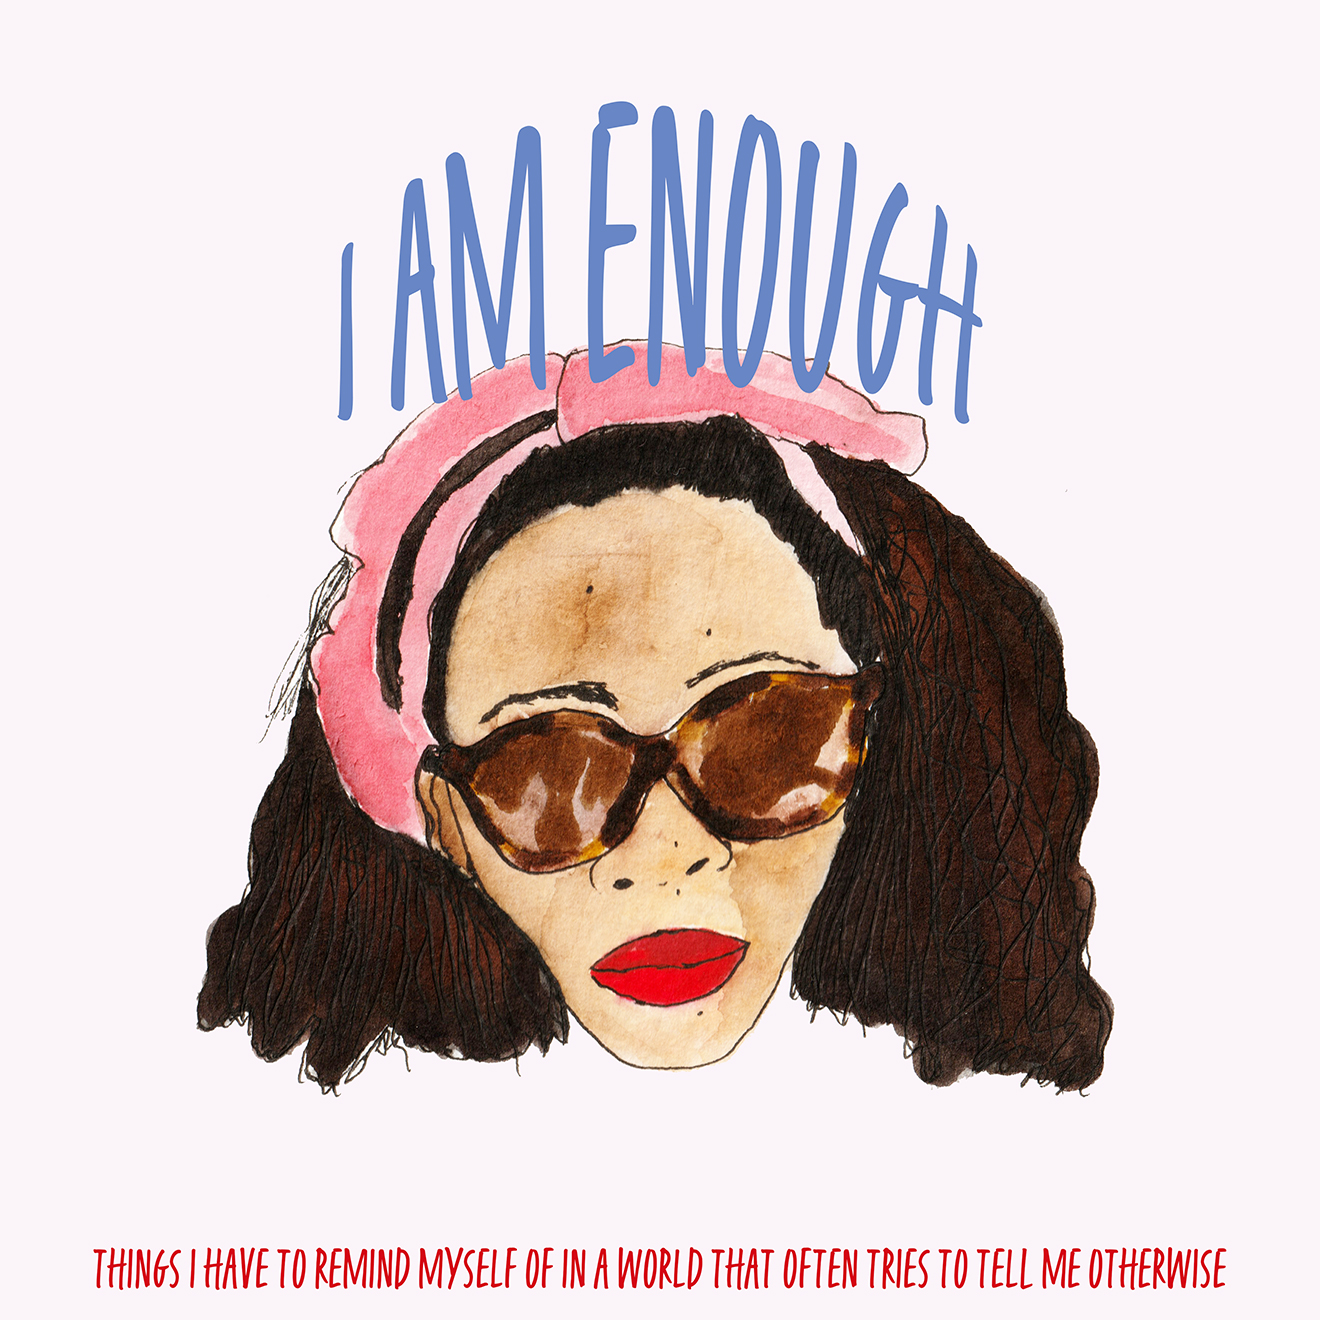 'I am enough.' Things I have to remind myself of in a world that often tries to tell me otherwise. illustration by Natalie Lue